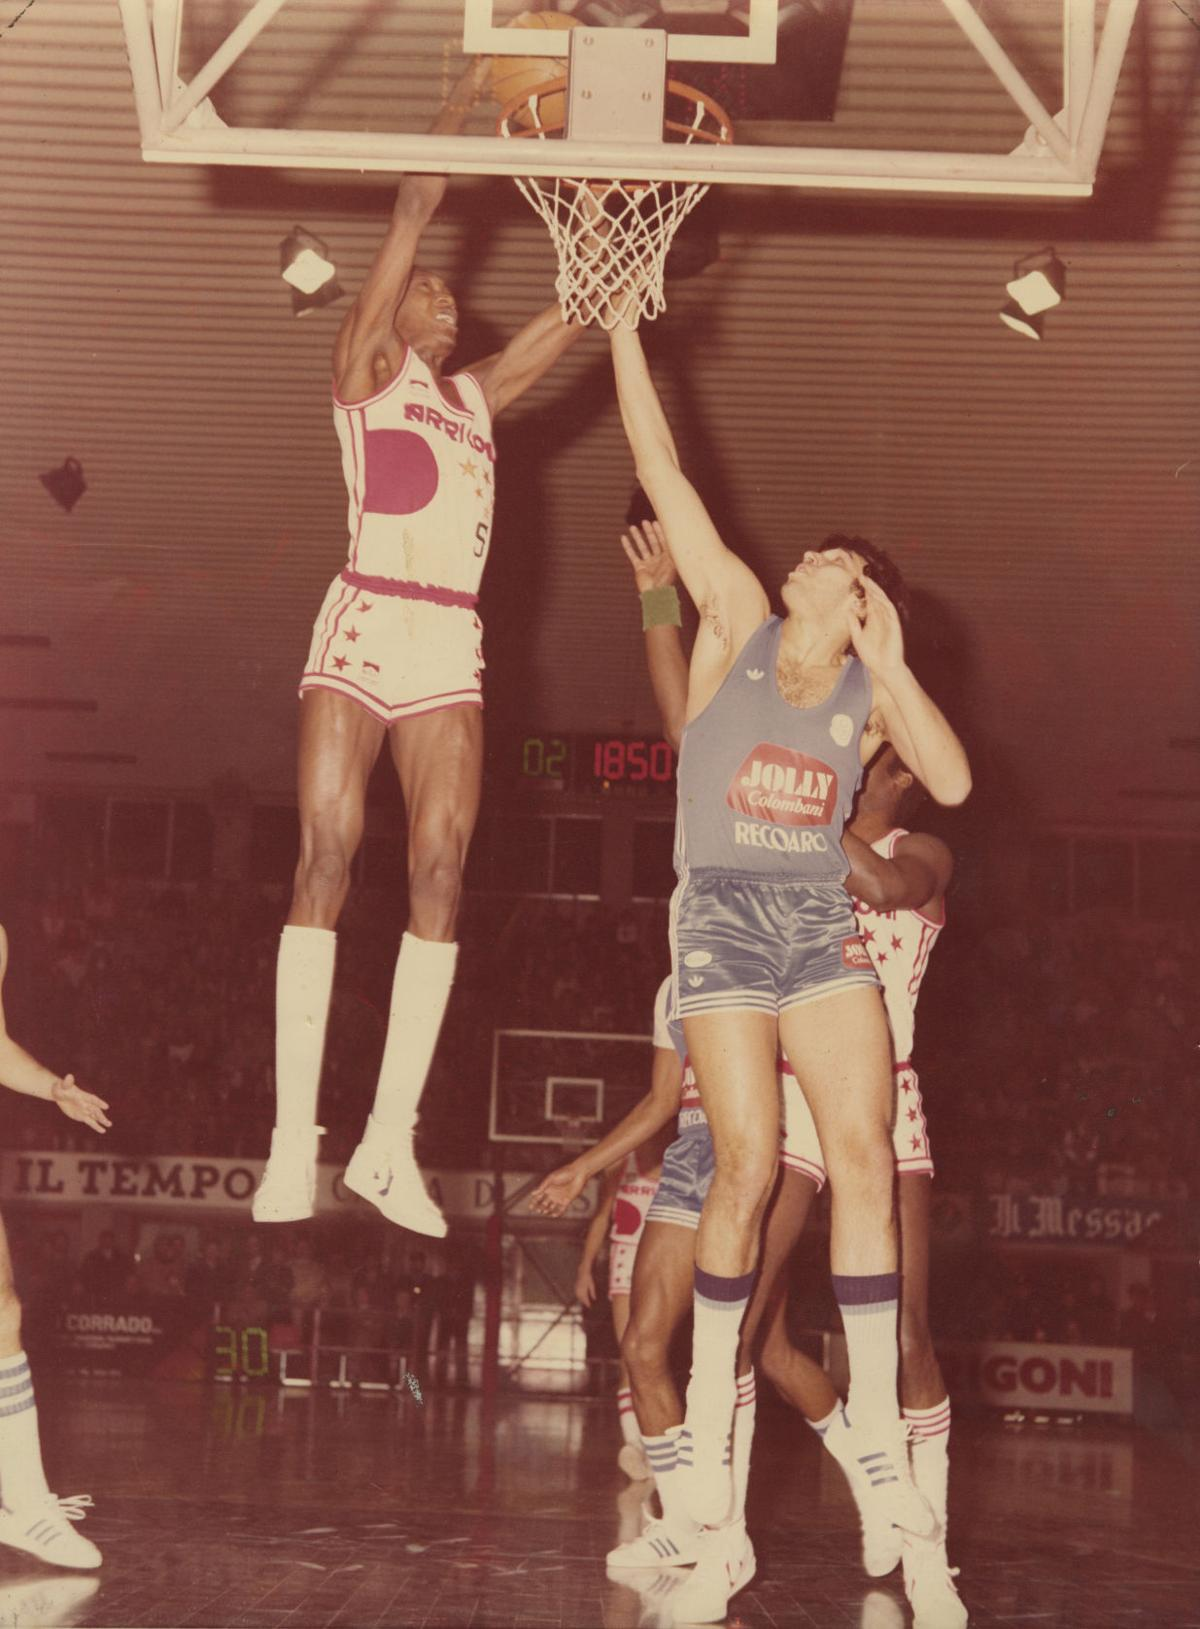 Chatelain: Lee Johnson, little-known NBA first-rounder from Omaha ...